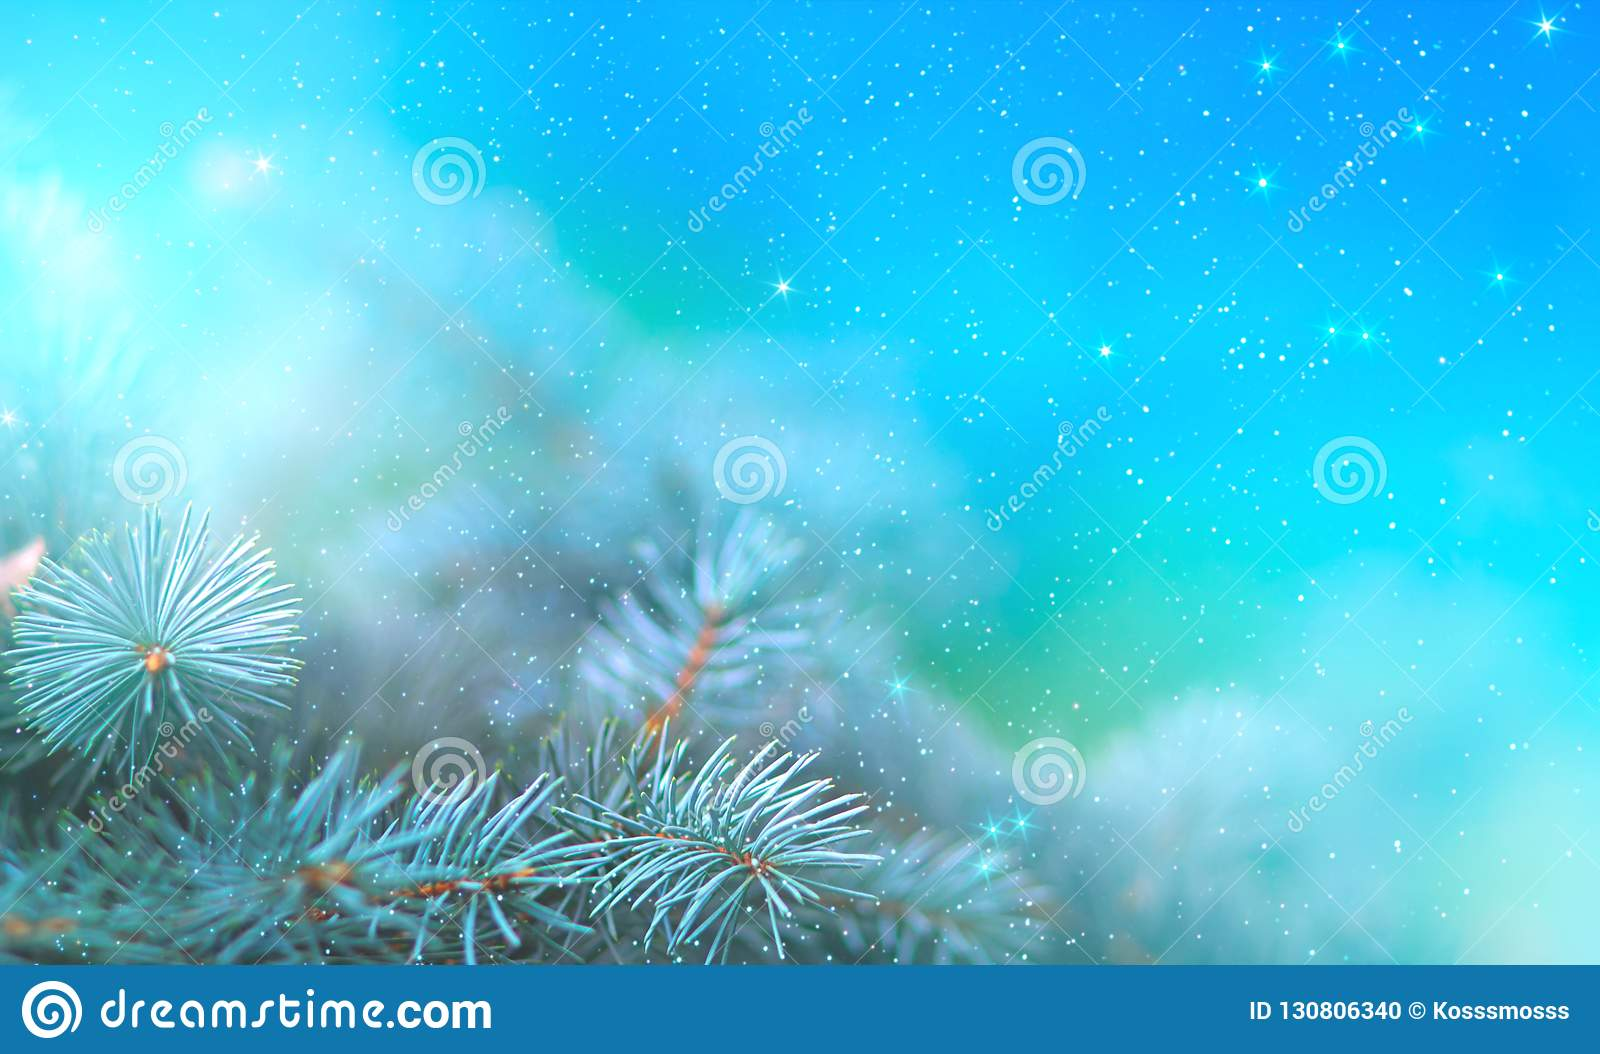 Christmas pine branch in the rays of light close up, blue background with reflections of stars and beautiful bokeh of lanterns.